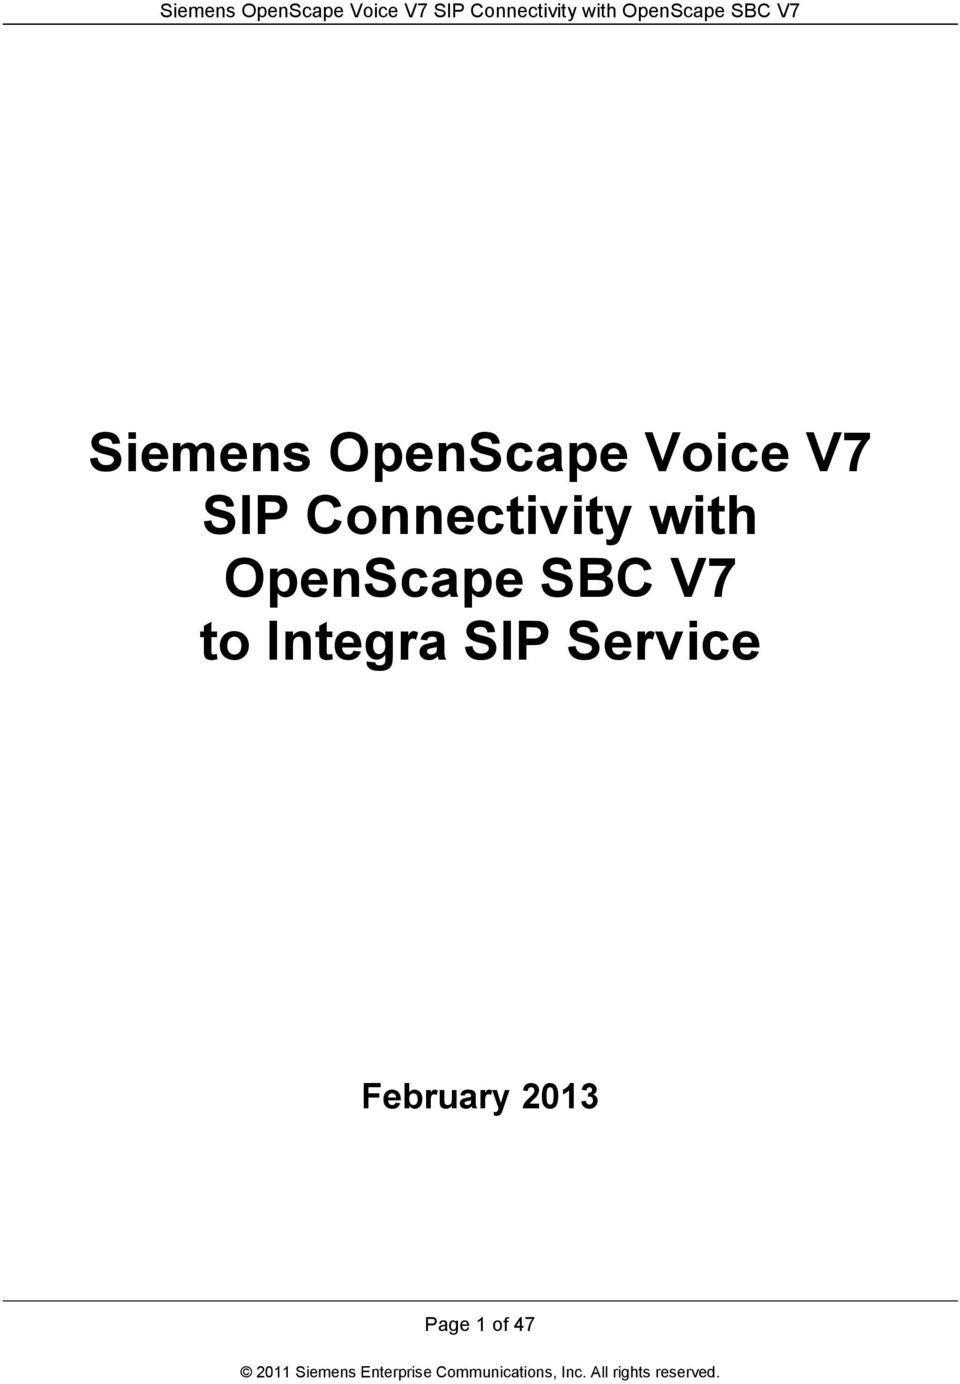 OpenScape SBC V7 to Integra